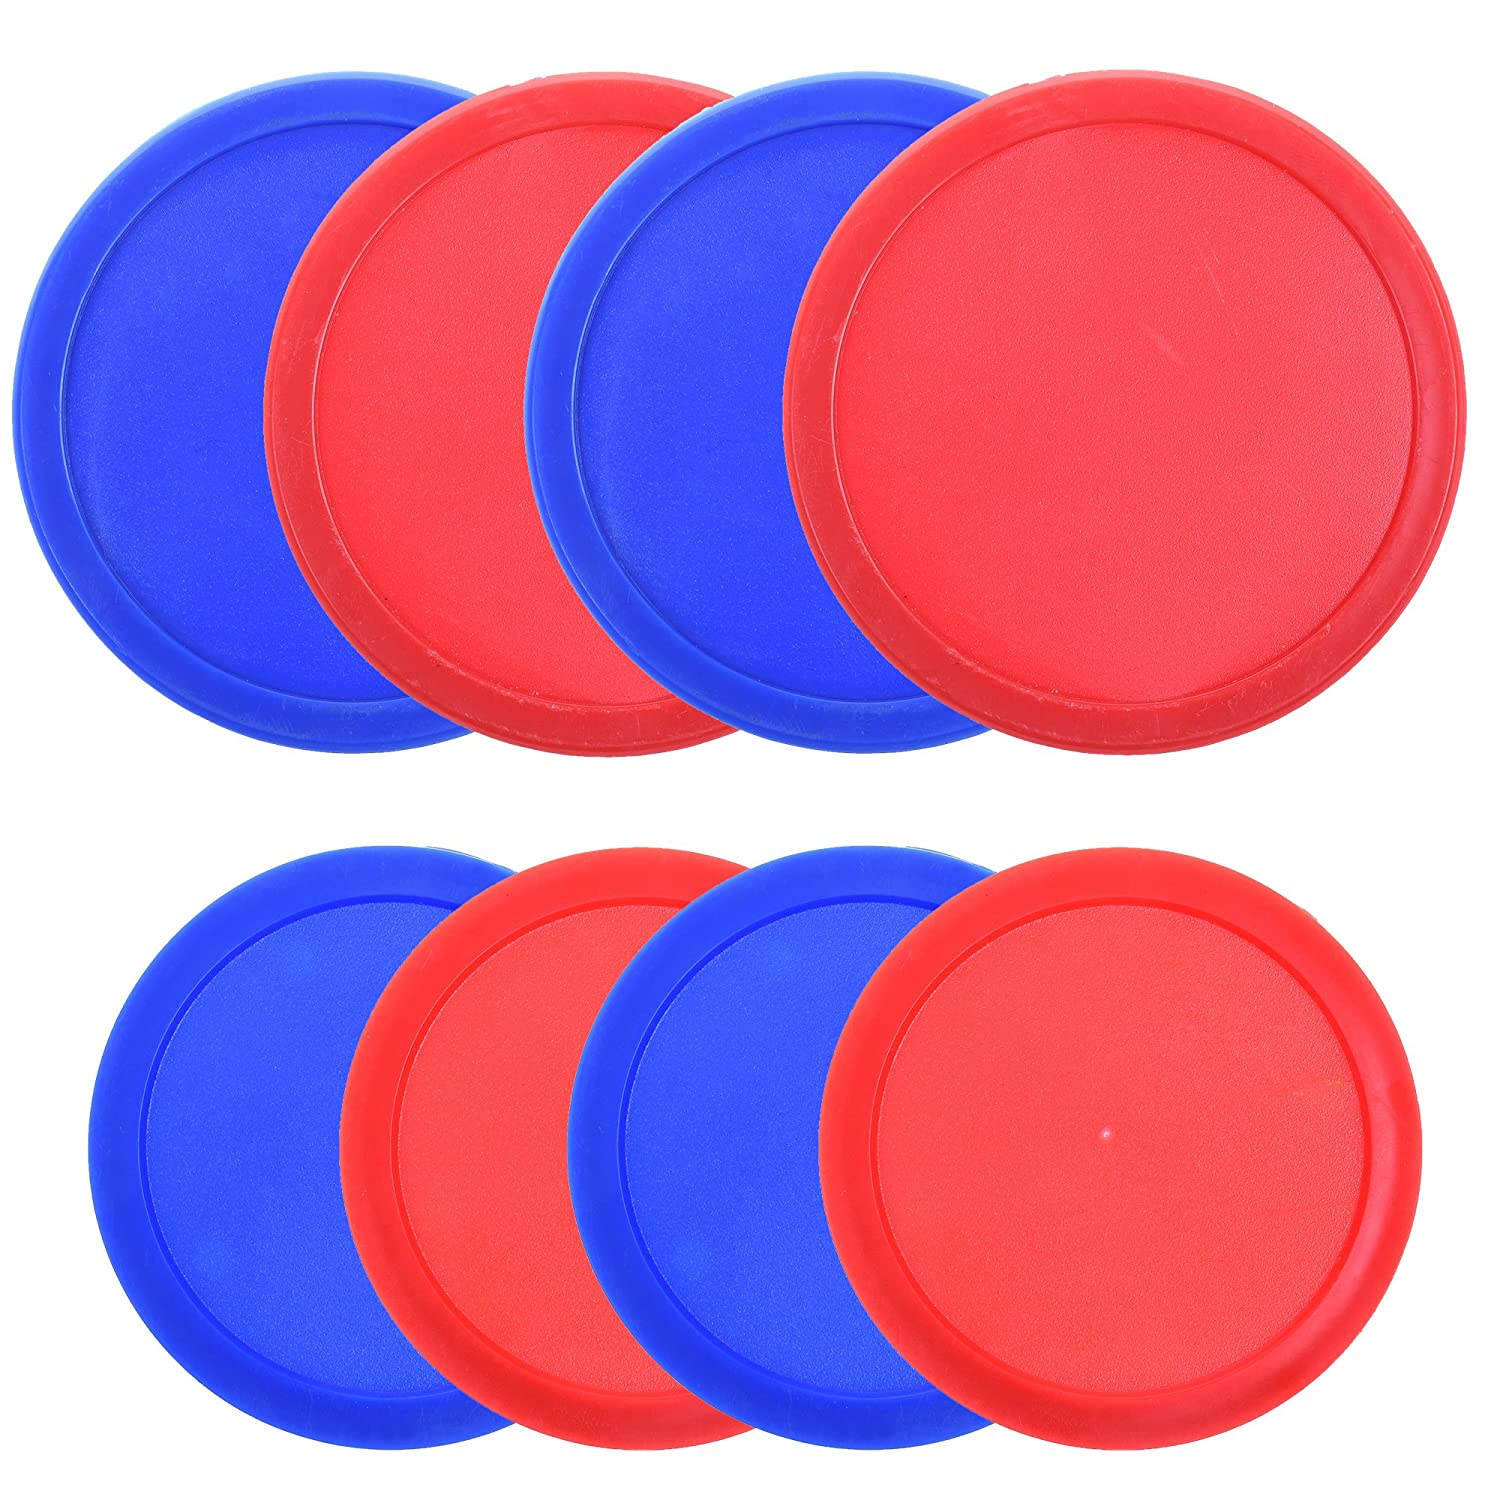 Cosmos Pack of 8 Home Air Hockey Pucks for Game Table SG_B073GVTSZ6_US